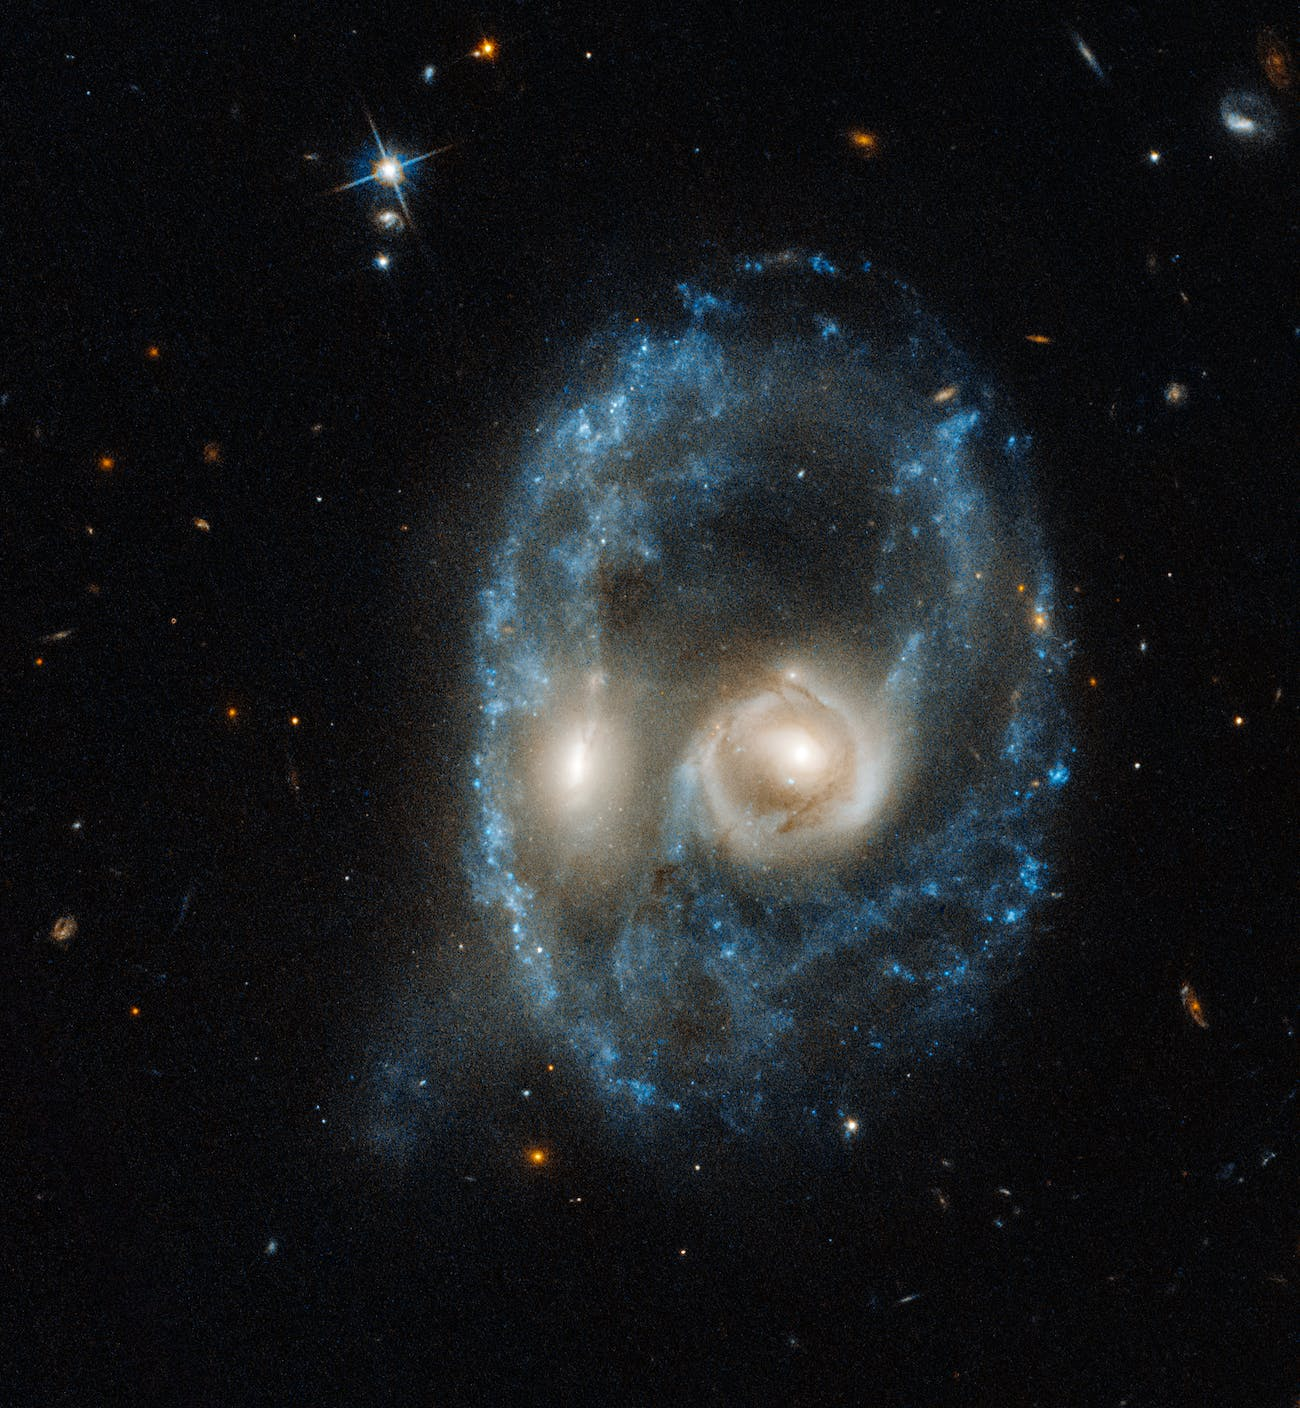 Two galaxies merger